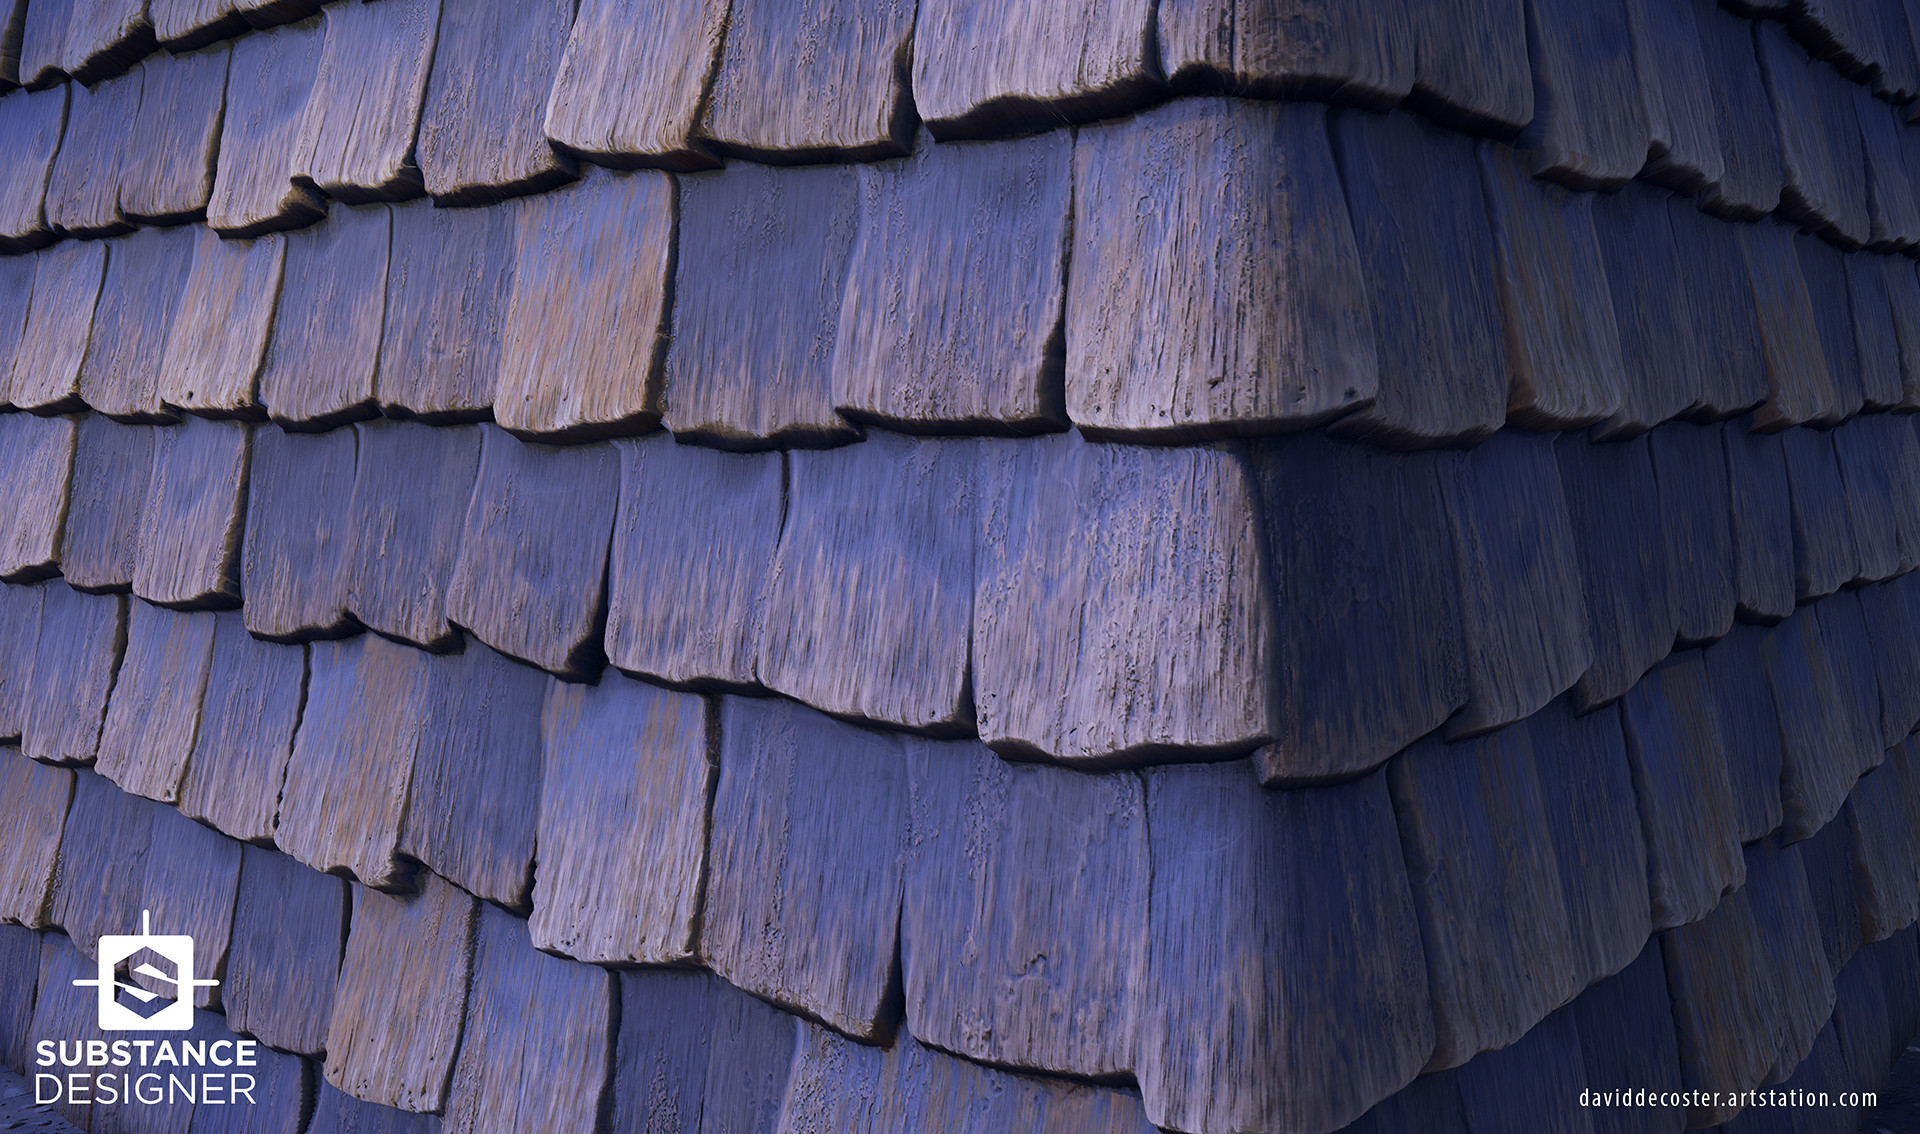 David decoster decoster roof shingles 03 detail